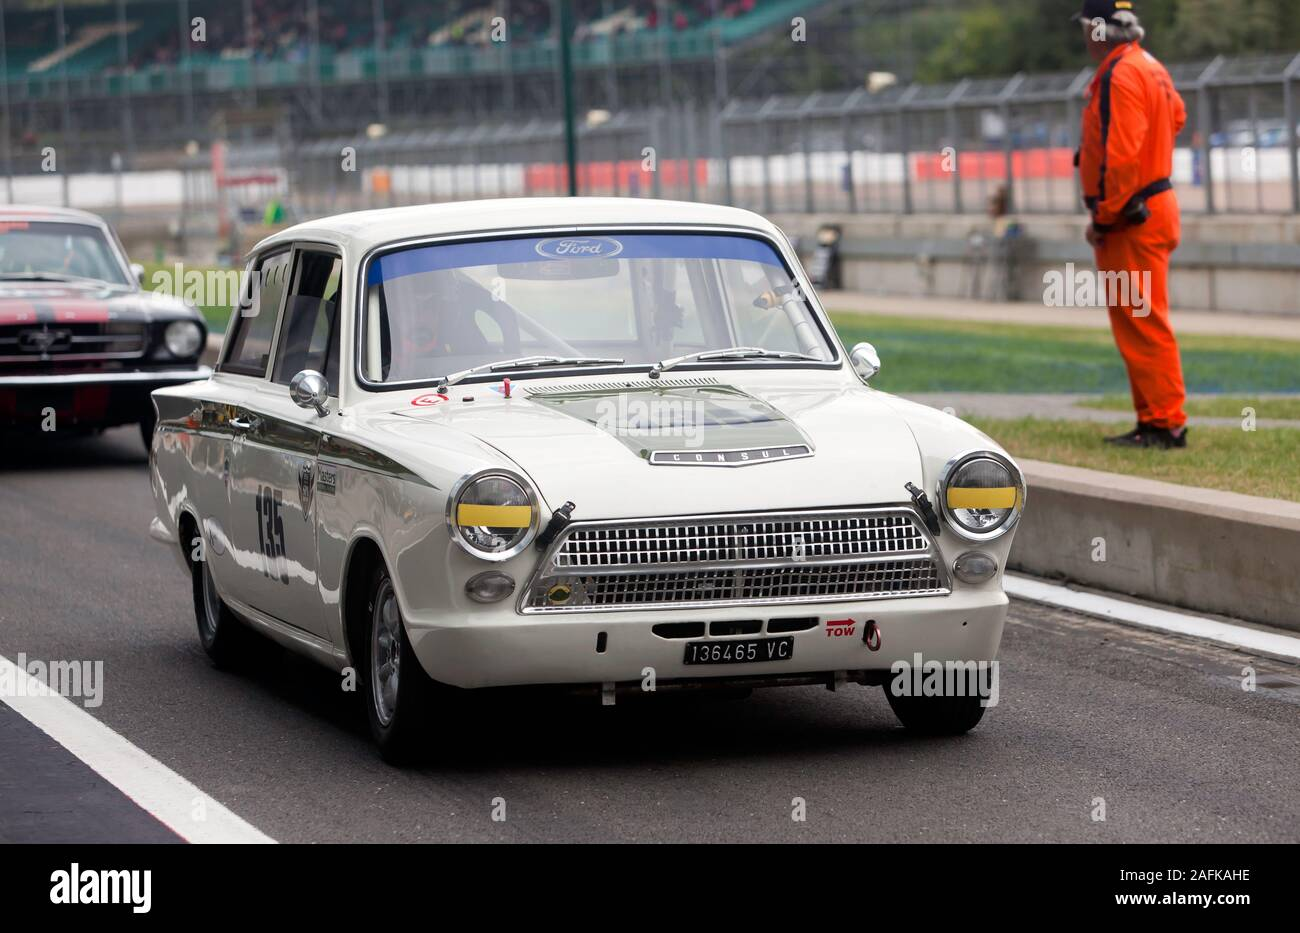 A 1965, White, Ford Lotus Cortina, exiting the pit lane during the Transatlantic Trophy for Pre '66 Touring Cars, at the 2019 Silverstone Classic Stock Photo